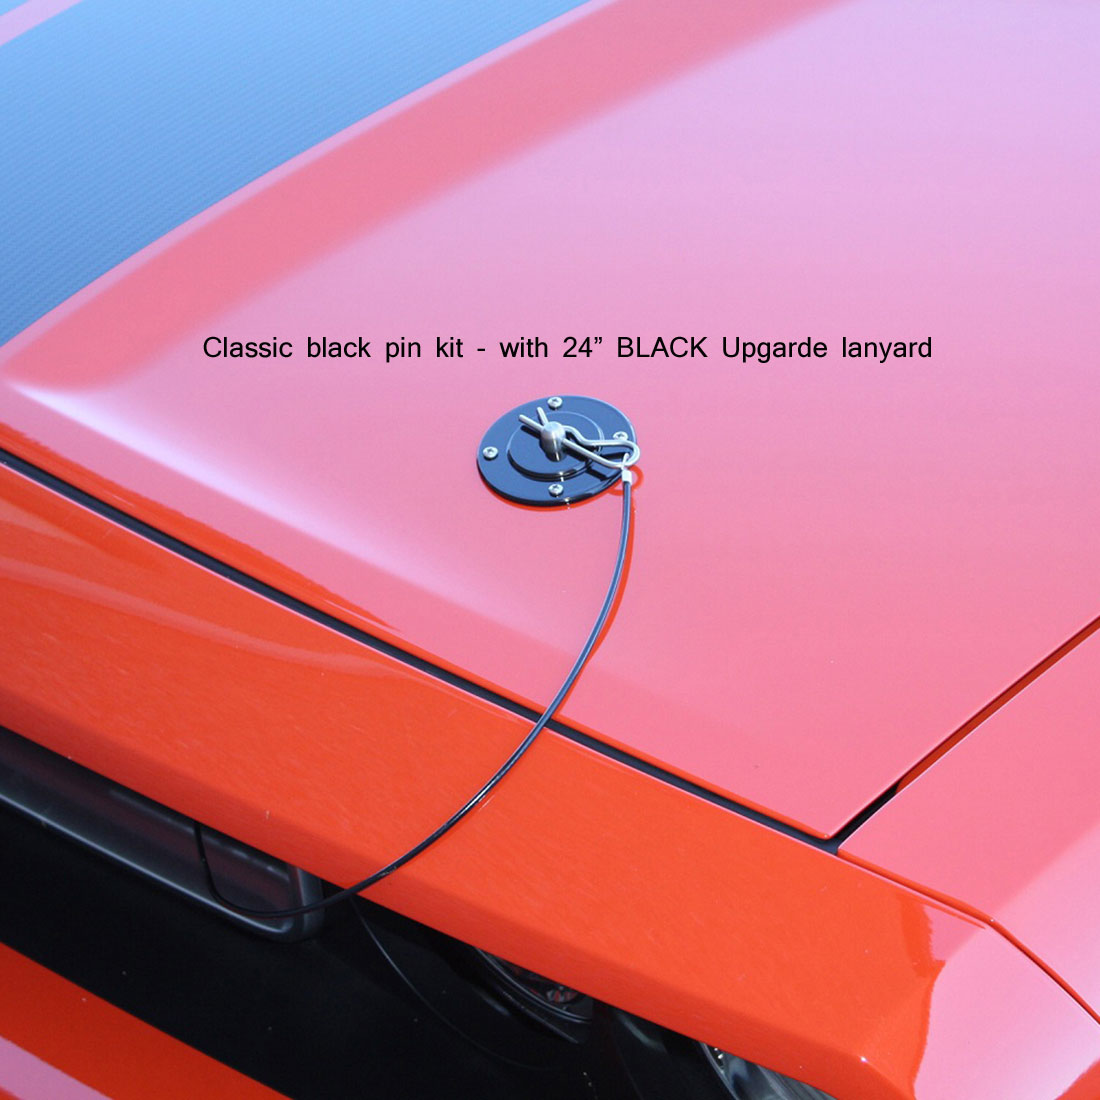 79-2014 Mustang & Universal Fit SALE Hood Pin Kit Classic Style W/Lanyard - Black (NO DRILLING)